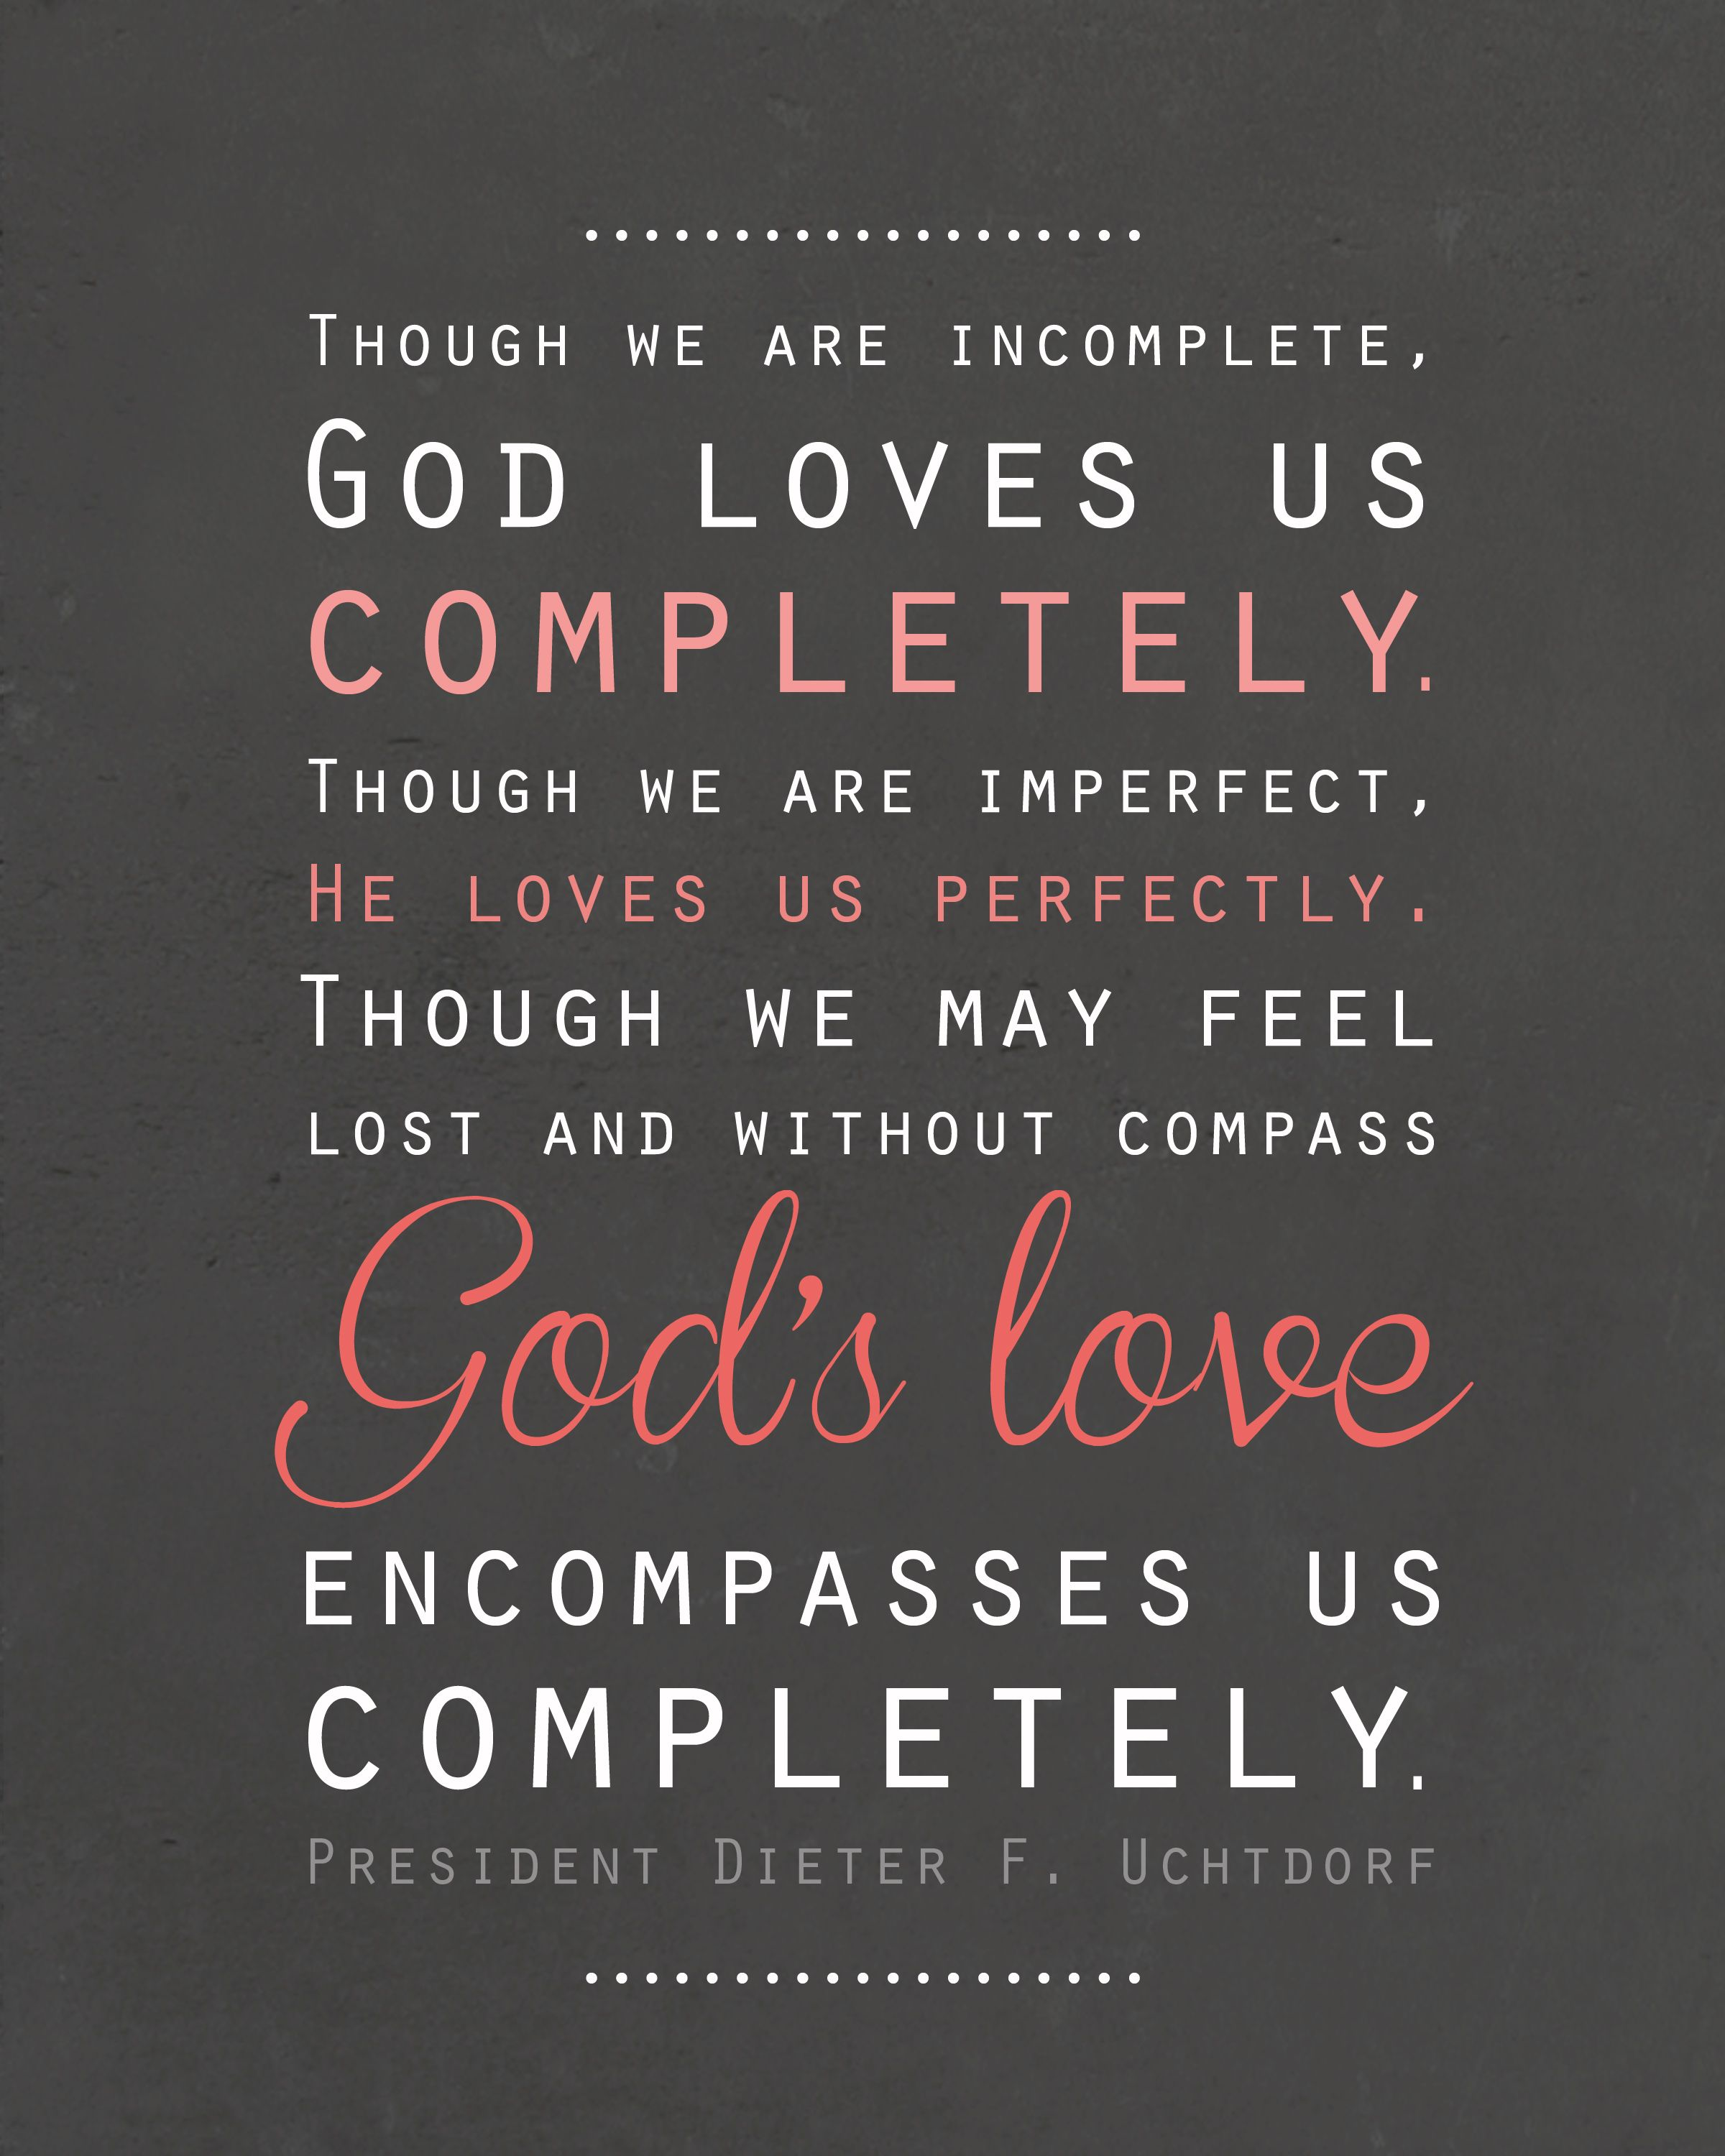 God's Love Quotes New Free Lds Printable Artwork  Pinterest  Free Churches And